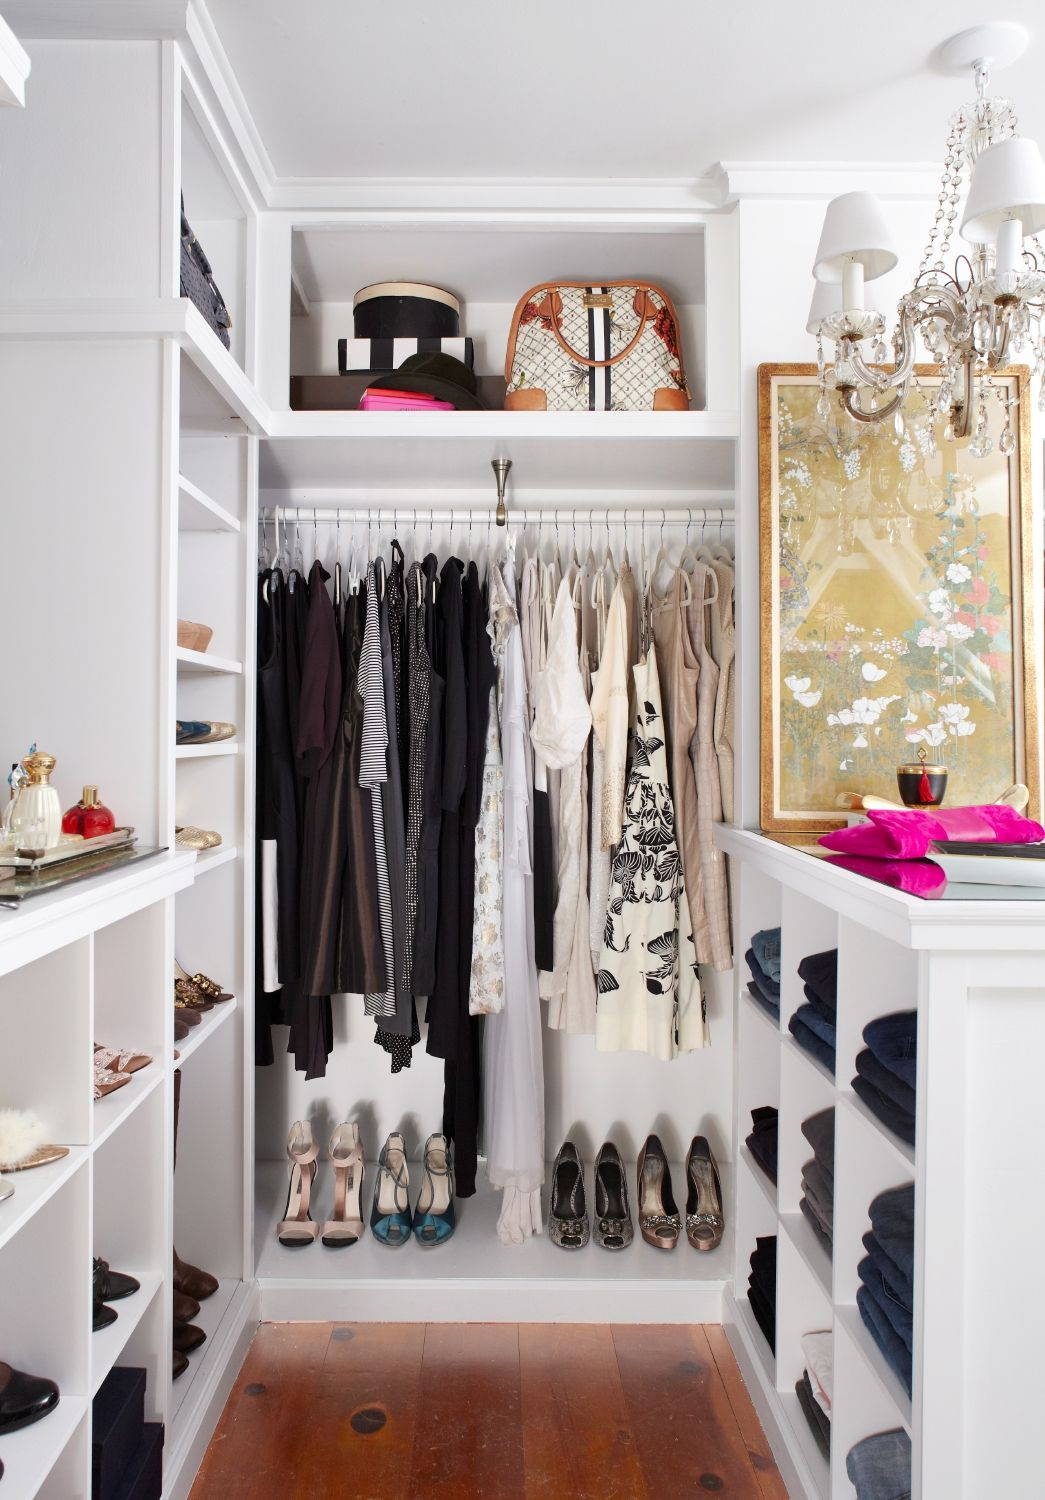 Master Closet Design Ideas image of walk in closet design ideas Find This Pin And More On Interior Ideas Small Walk In Closet Designs